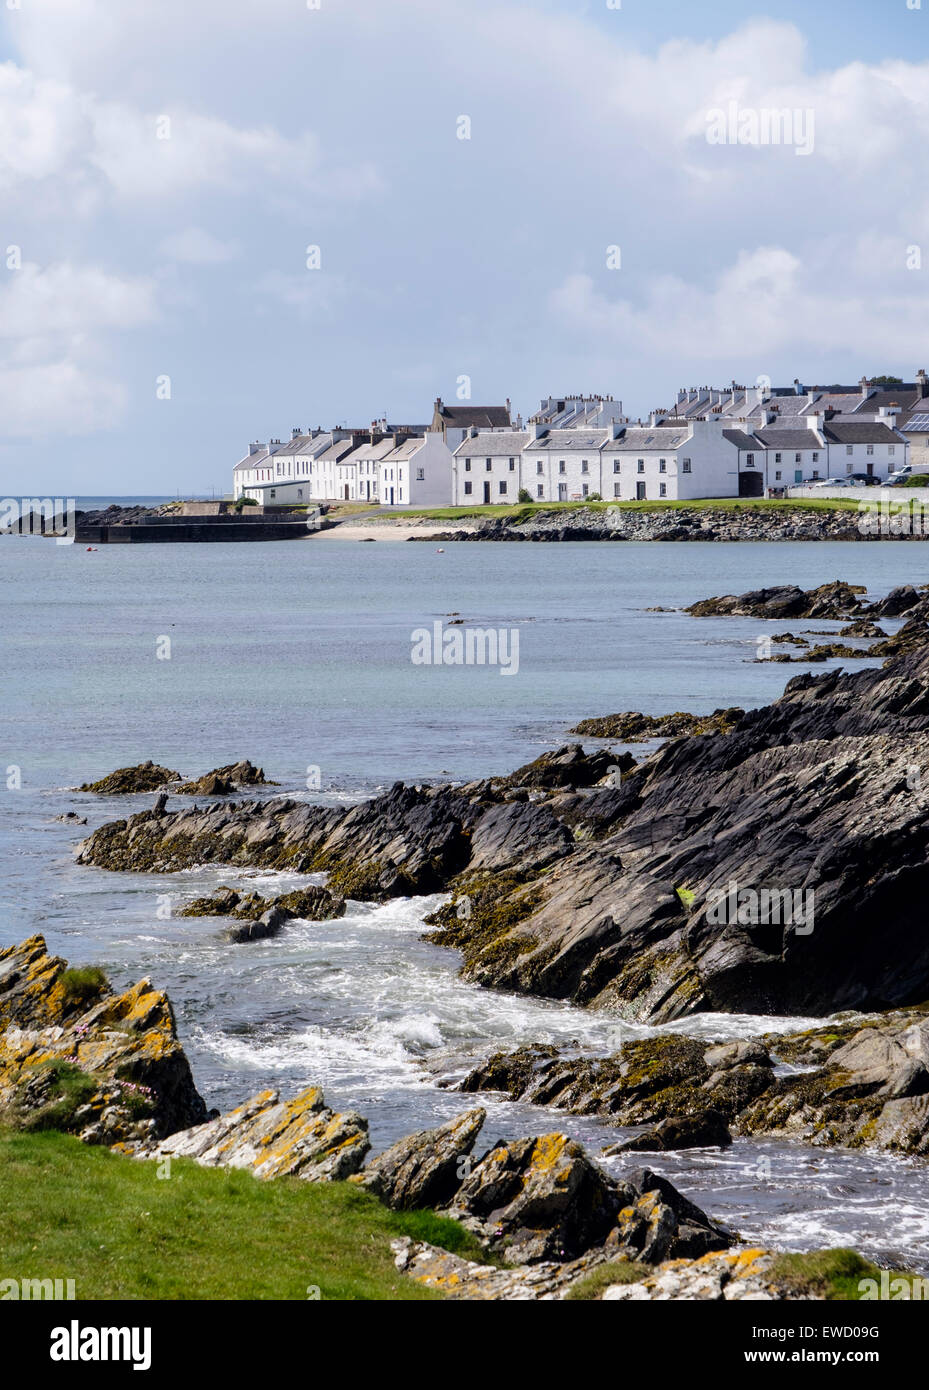 View along Scottish island rocky coast of Loch Indaal to Port Charlotte Isle of Islay Western Isles Inner Hebrides - Stock Image